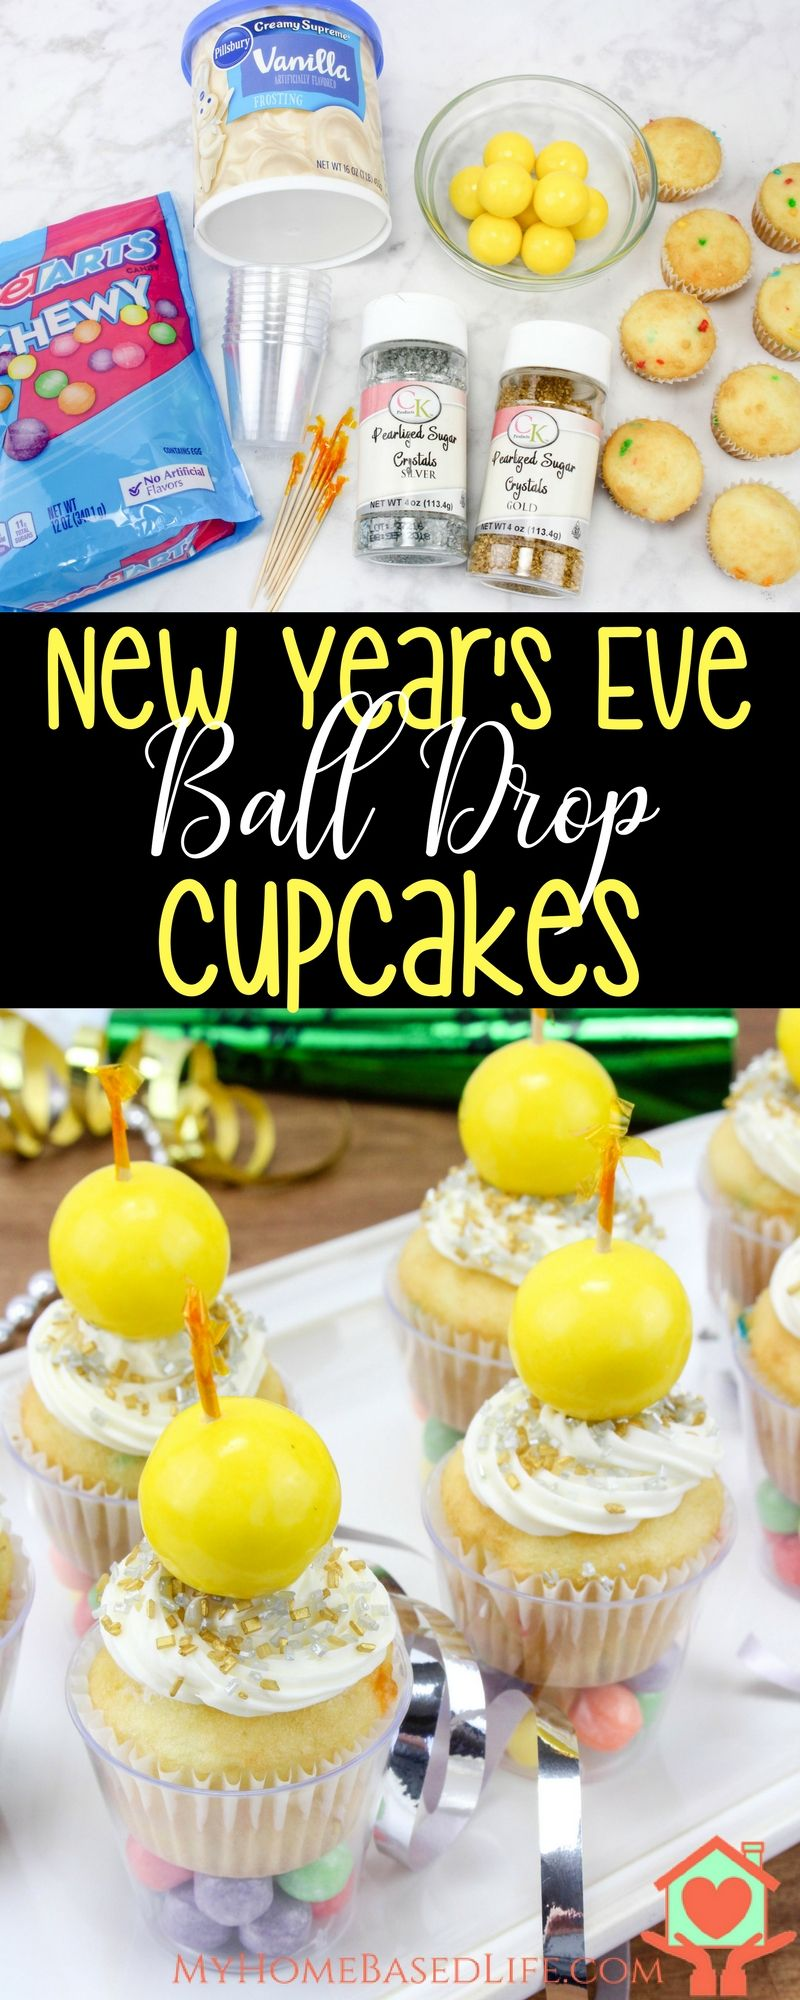 New Year's Ball Drop Cupcakes   New Year's Dessert   New ...